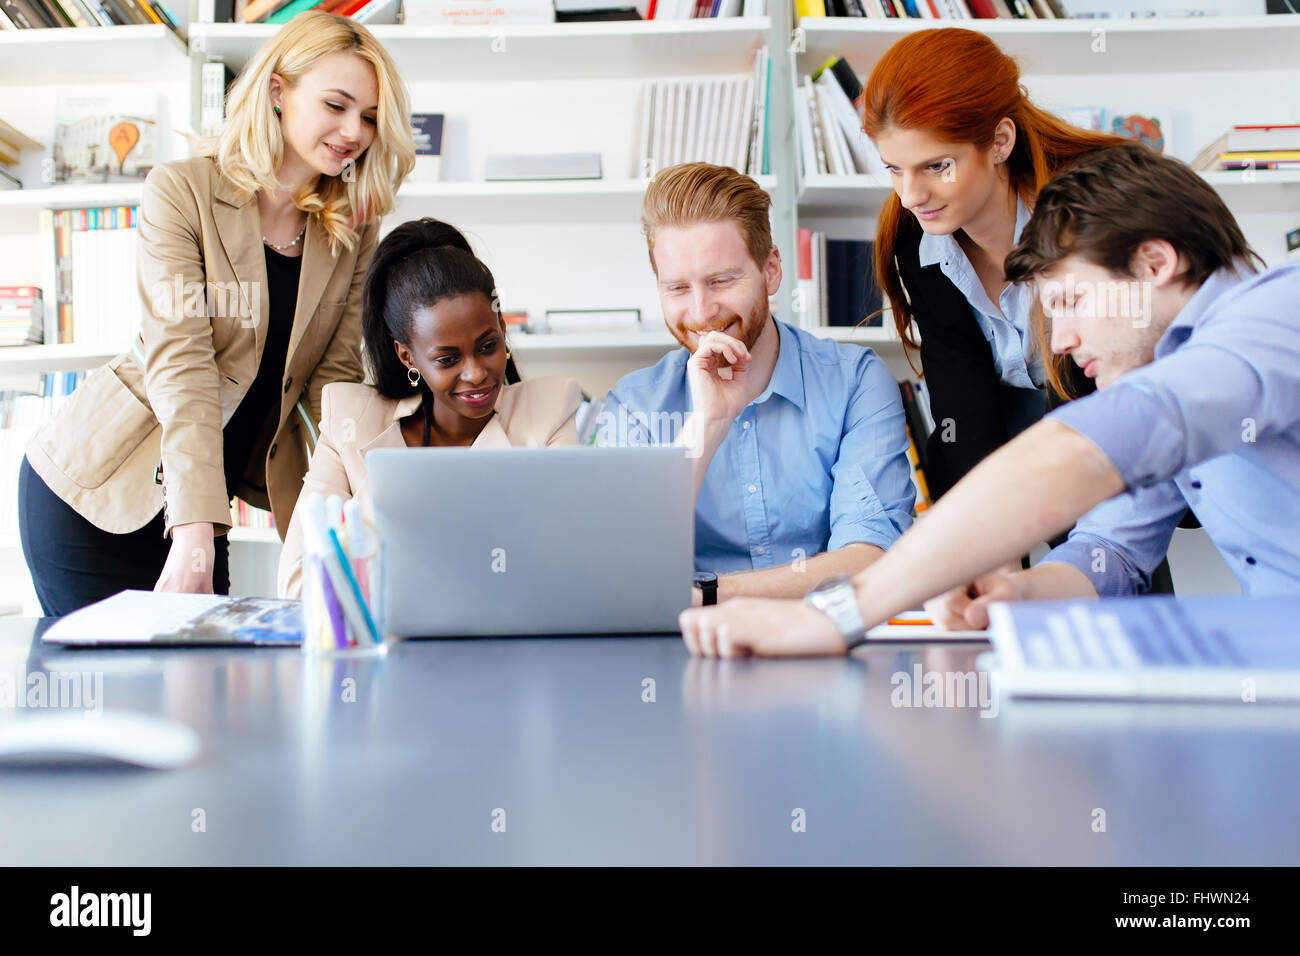 Multiethnic people working in modern well equipped office - Stock Image